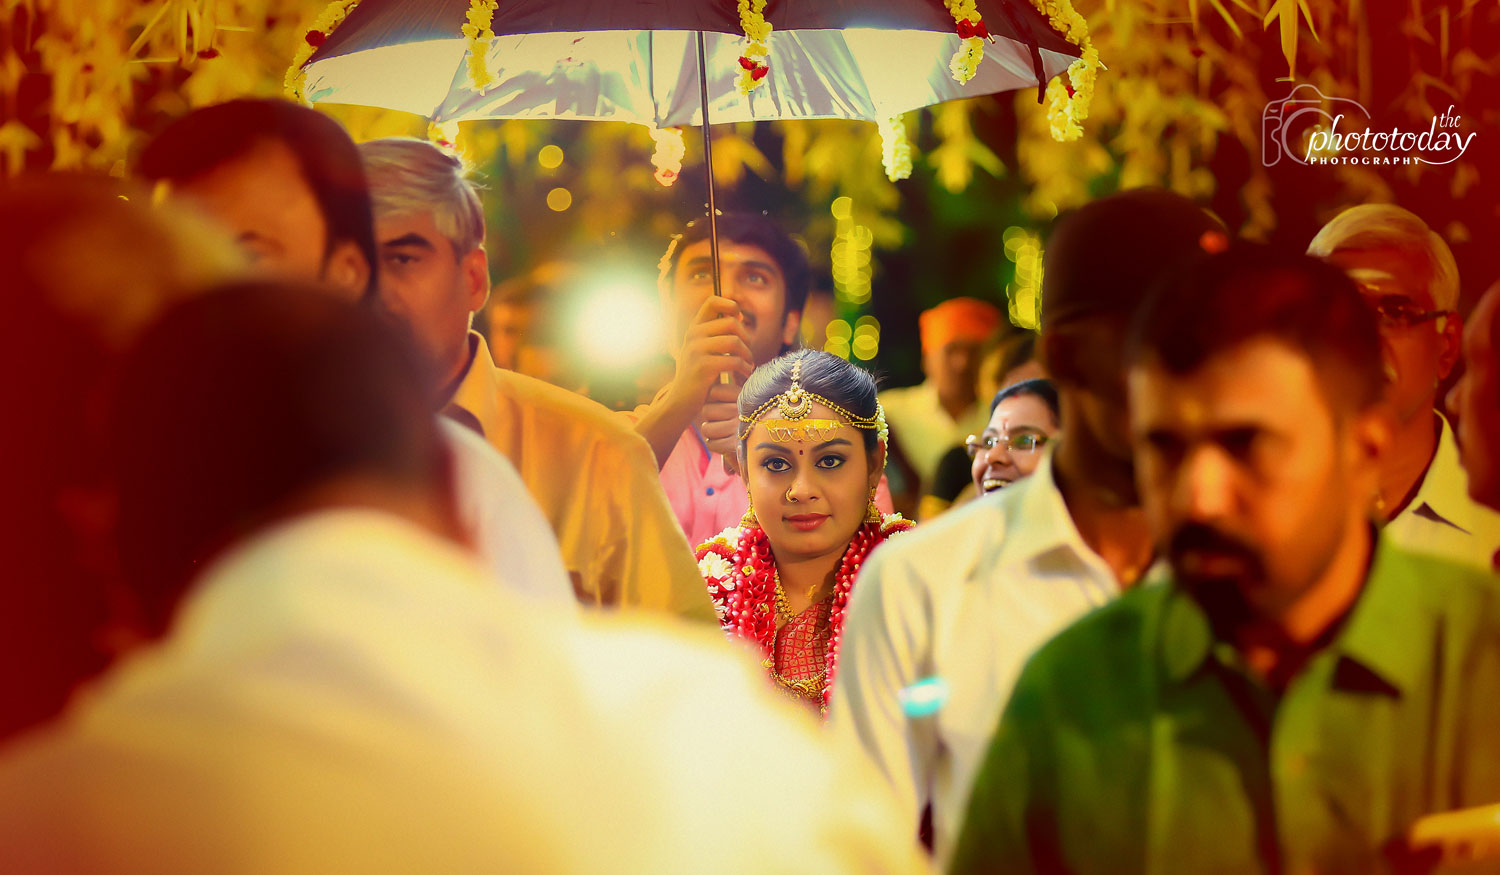 Candid-wedding-photography-10